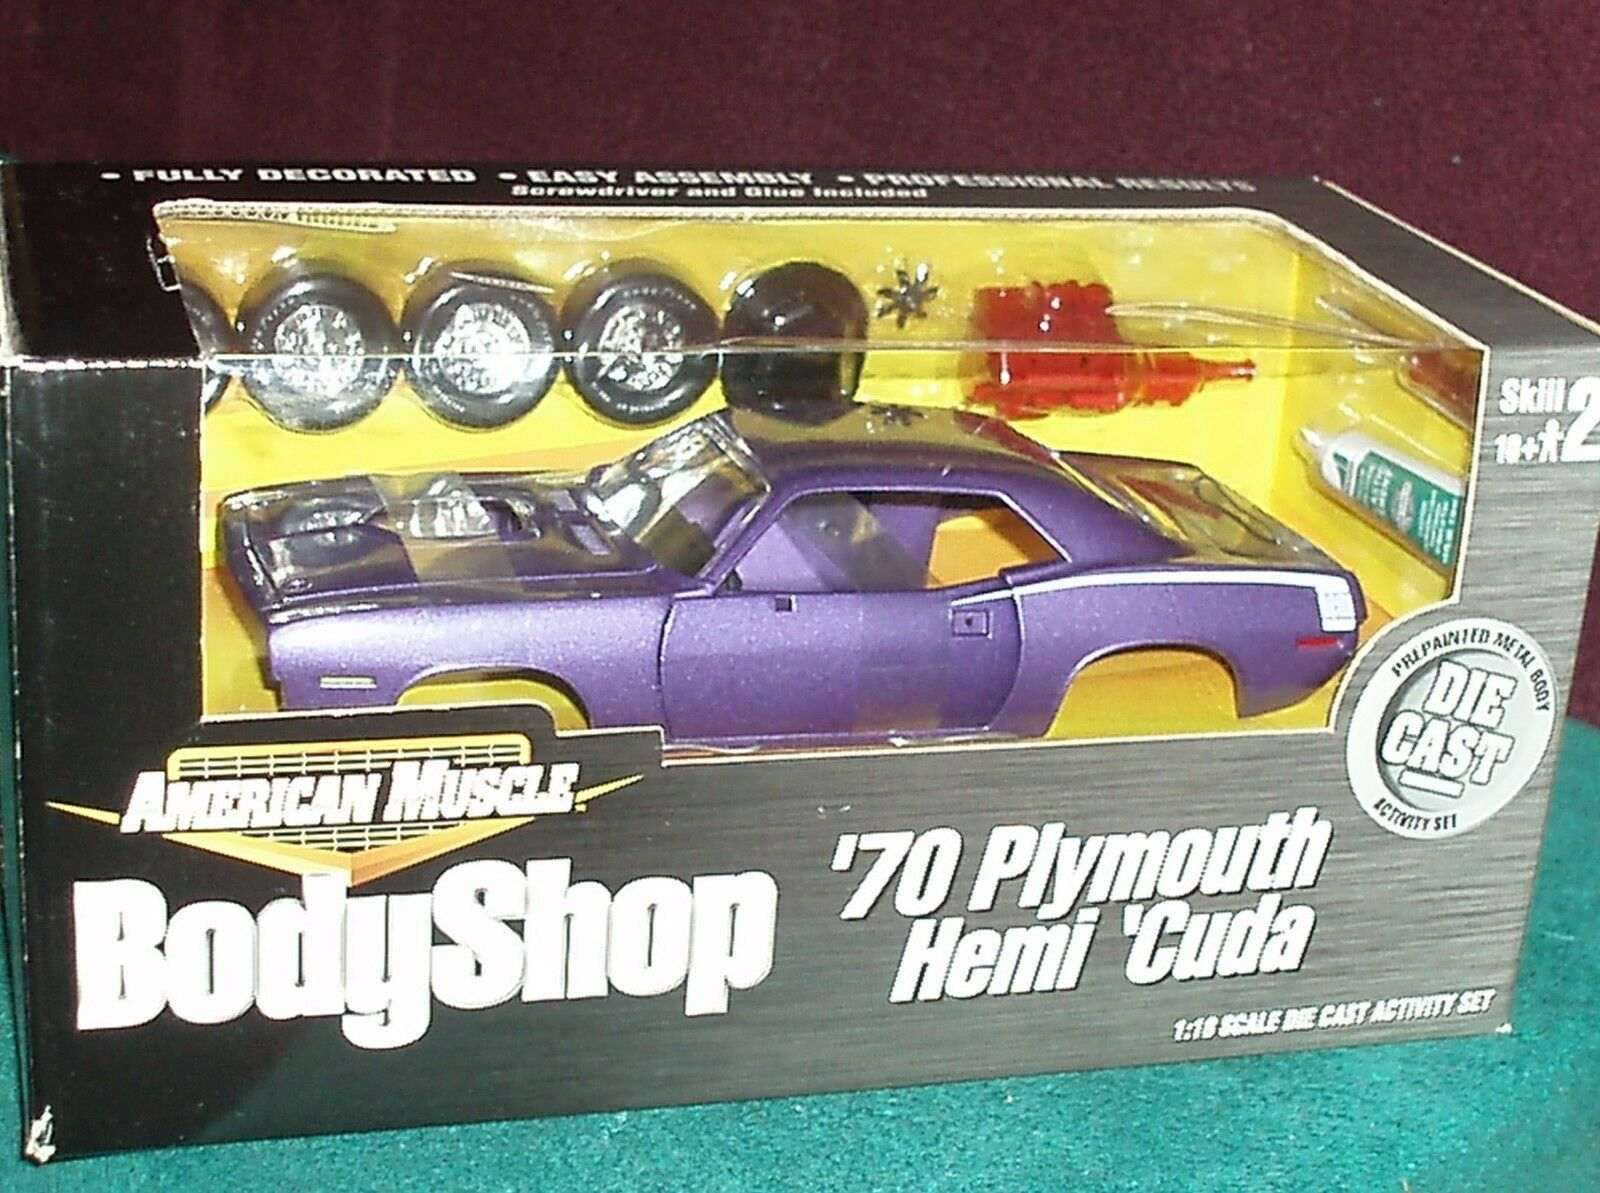 ERTL 1970 PLYMOUTH BARRACUDA HEMI CUDA MODEL KIT viola bianca 1 18